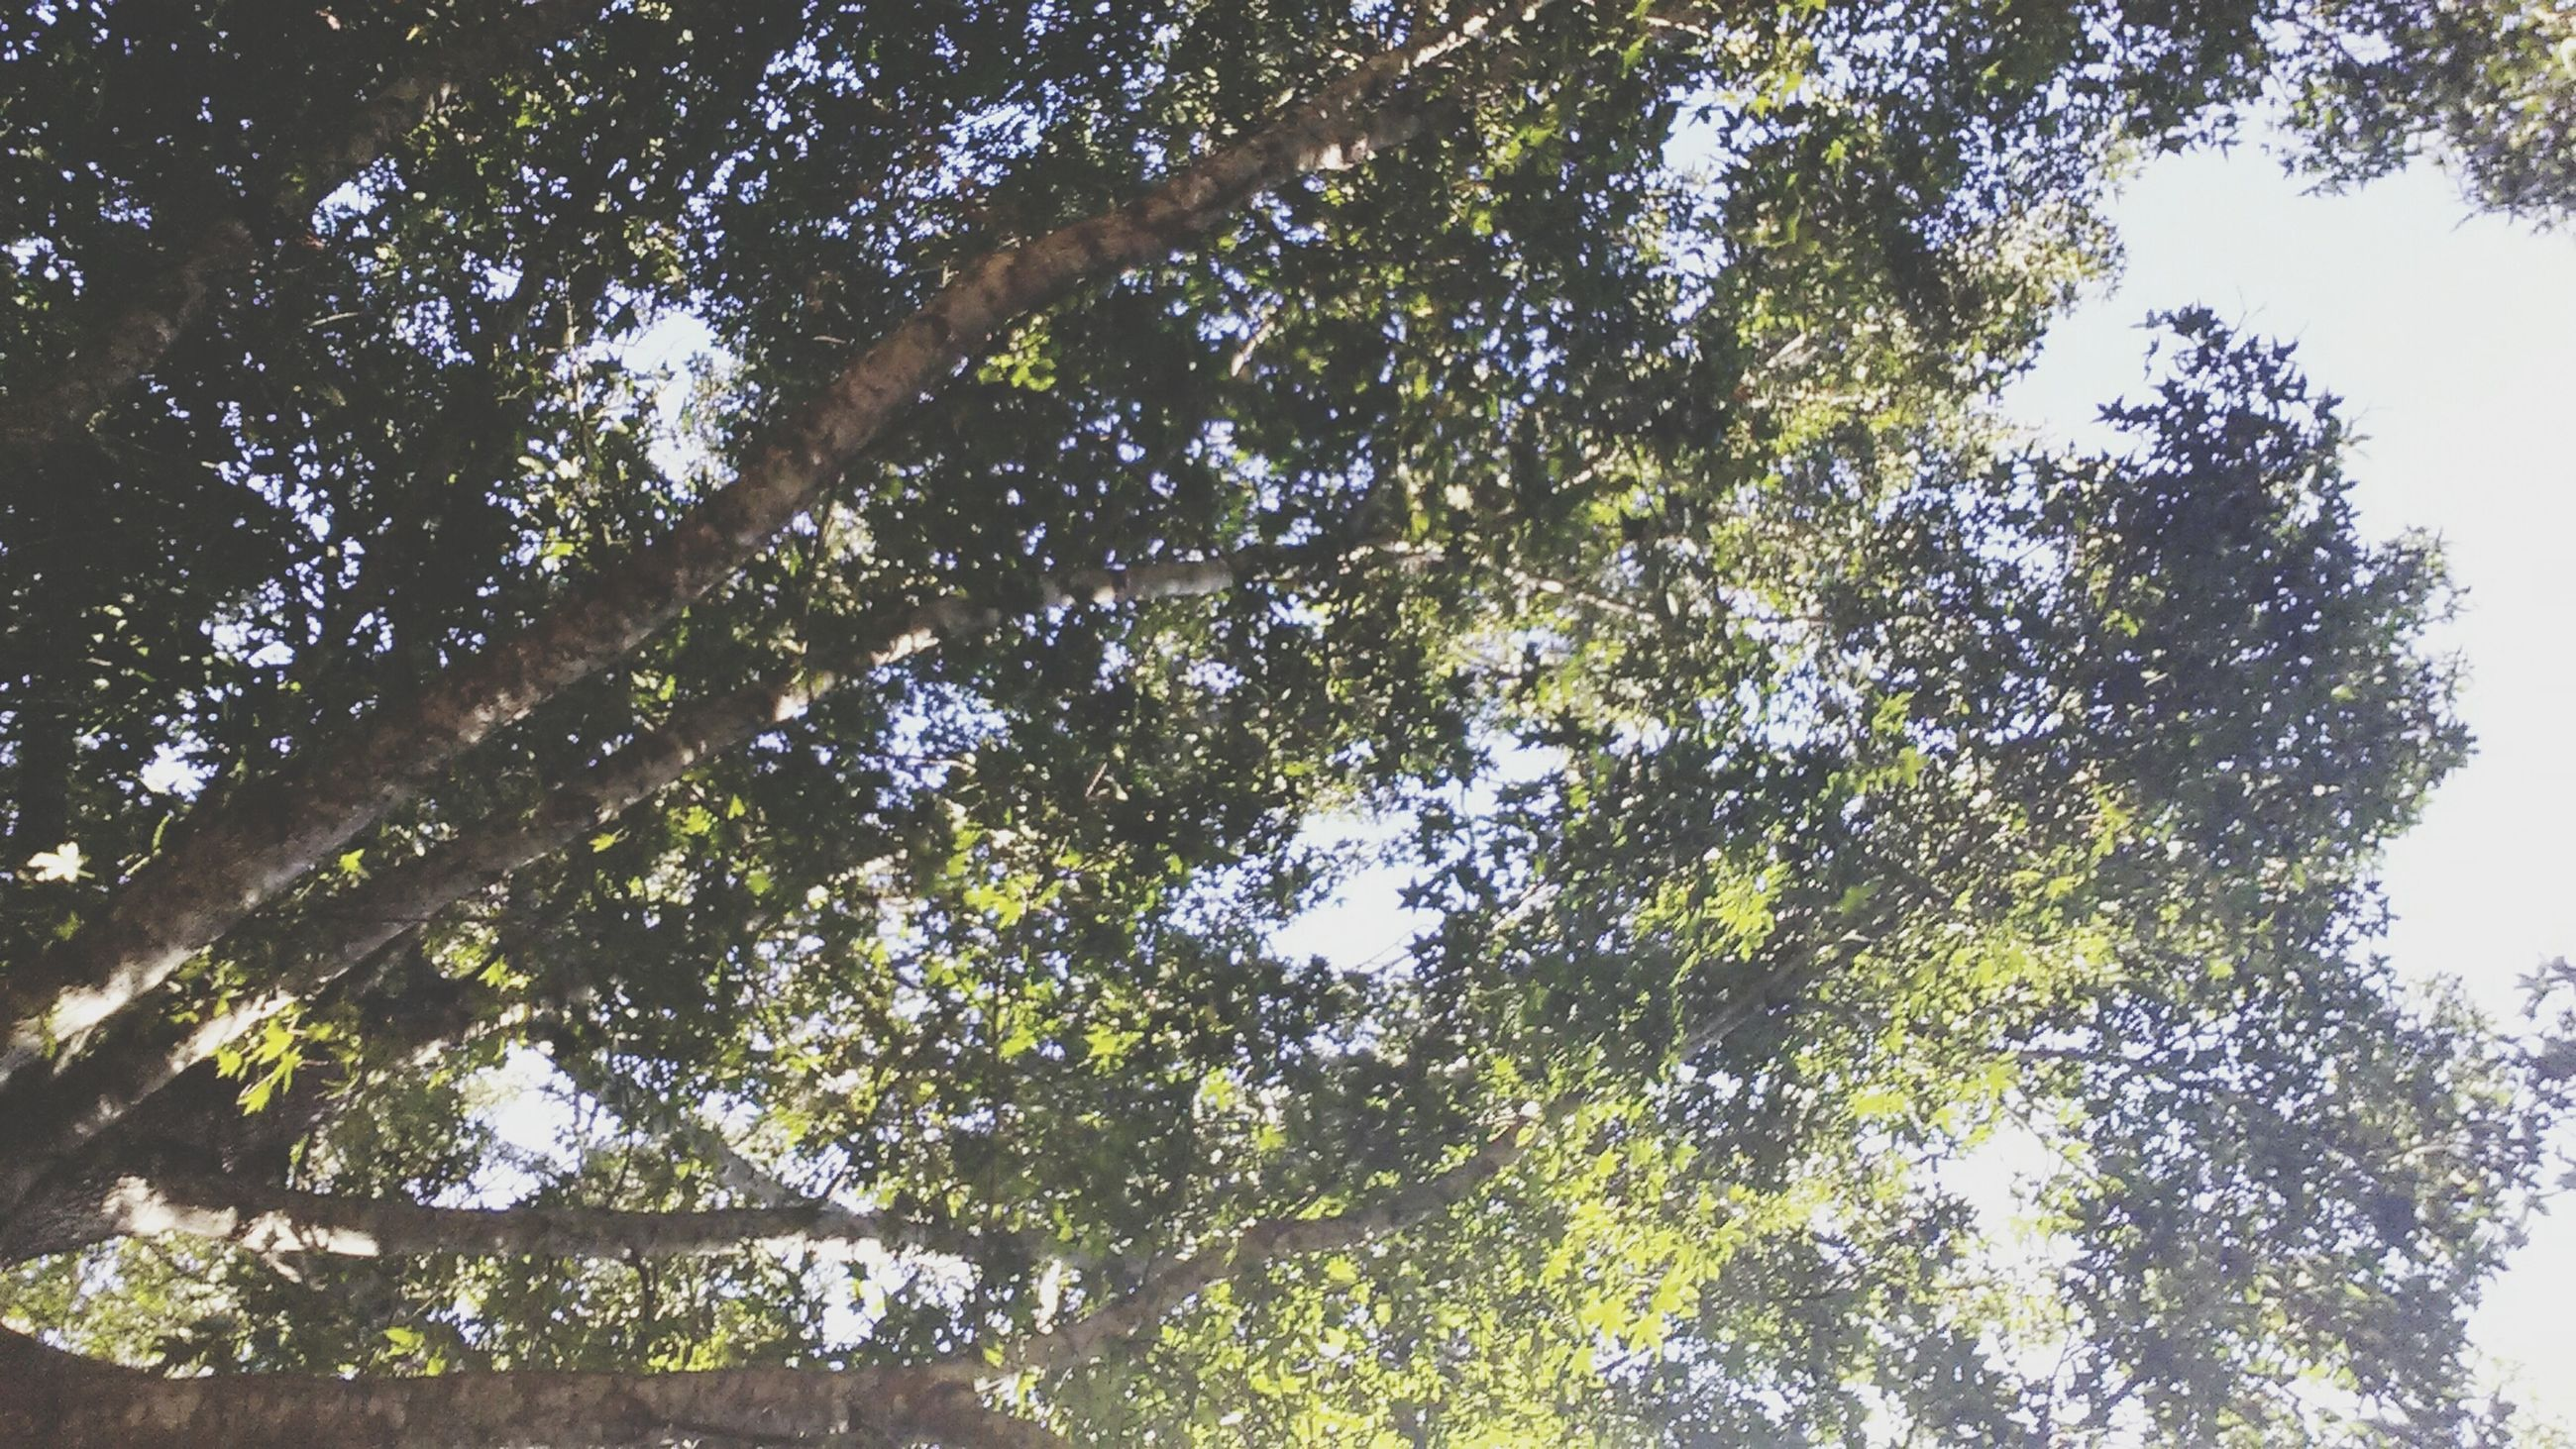 tree, low angle view, growth, branch, nature, green color, tranquility, beauty in nature, sky, tree trunk, day, forest, outdoors, no people, clear sky, sunlight, lush foliage, backgrounds, scenics, leaf